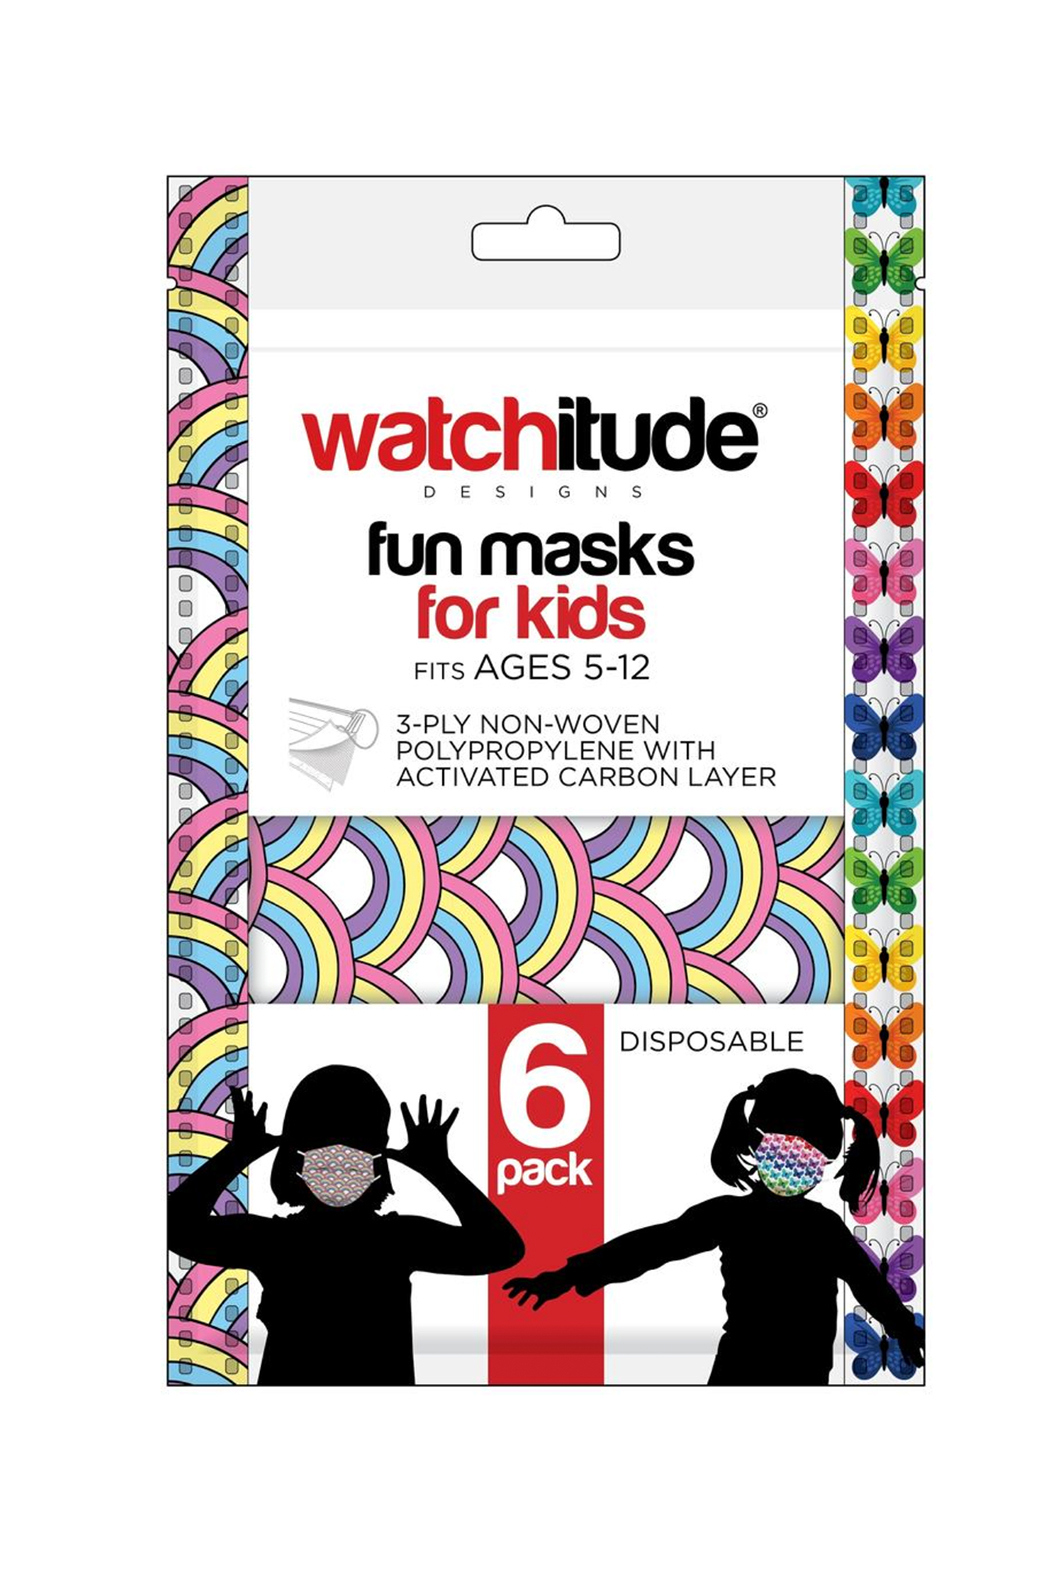 Watchitude Fun Carbon Masks Butterfly/Rainbow Playground 6 Pack - Kids Ages 5-12 - Main Image